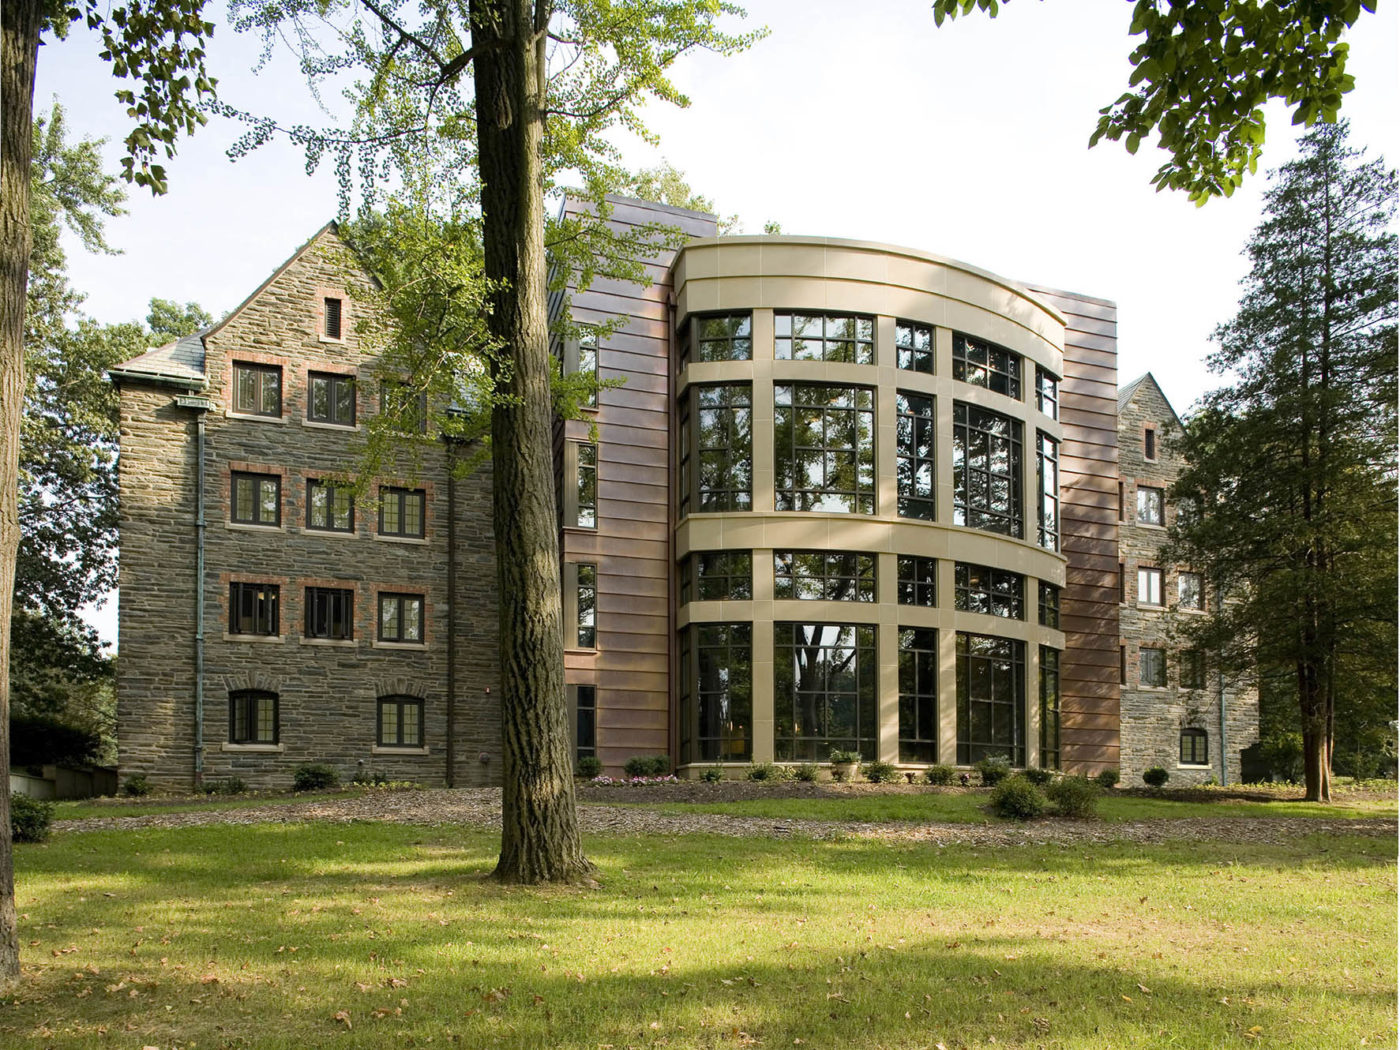 Connelly Hall, Rosemont College, dormitory, architecture, college